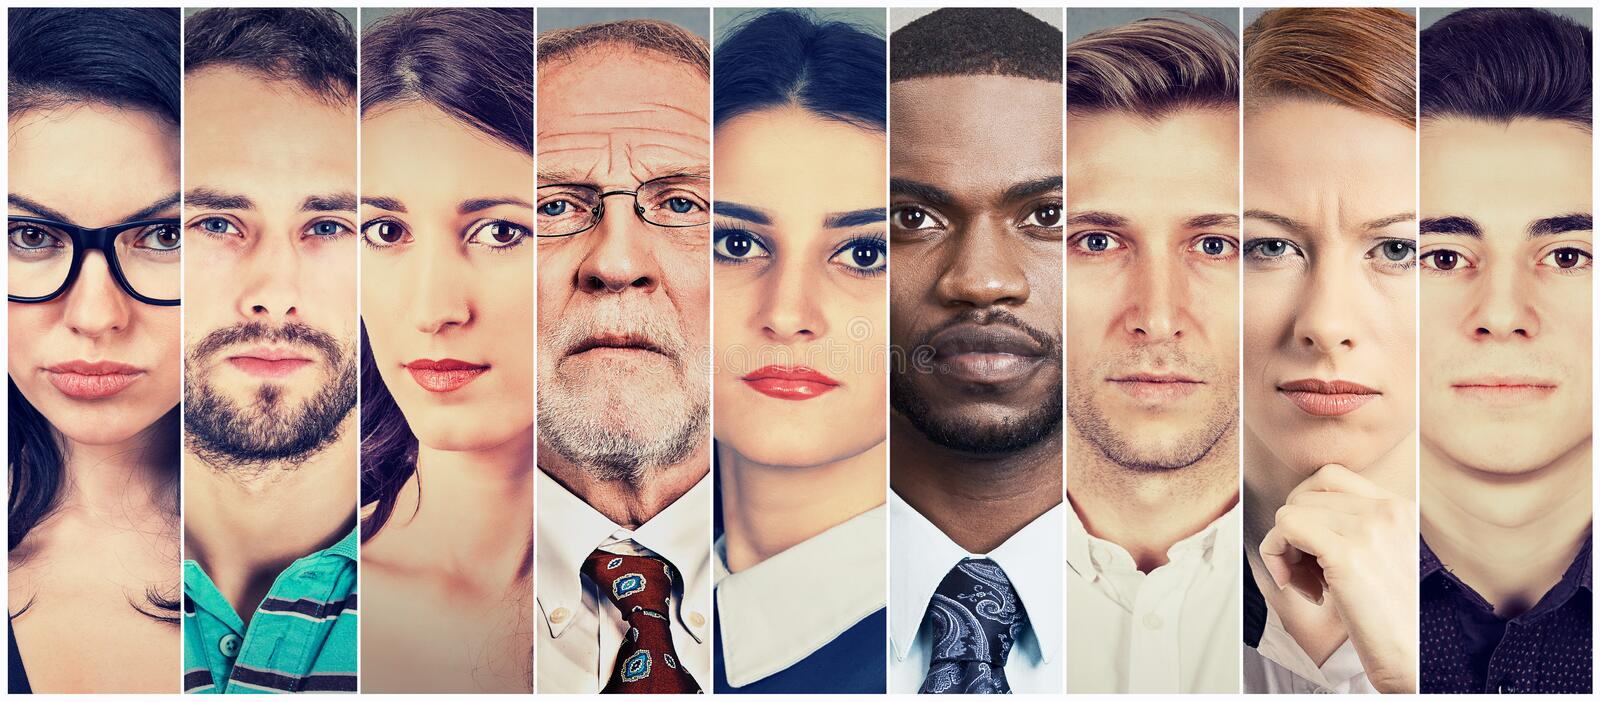 Multiethnic group of serious people. Multiethnic group of serious diverse people stock image